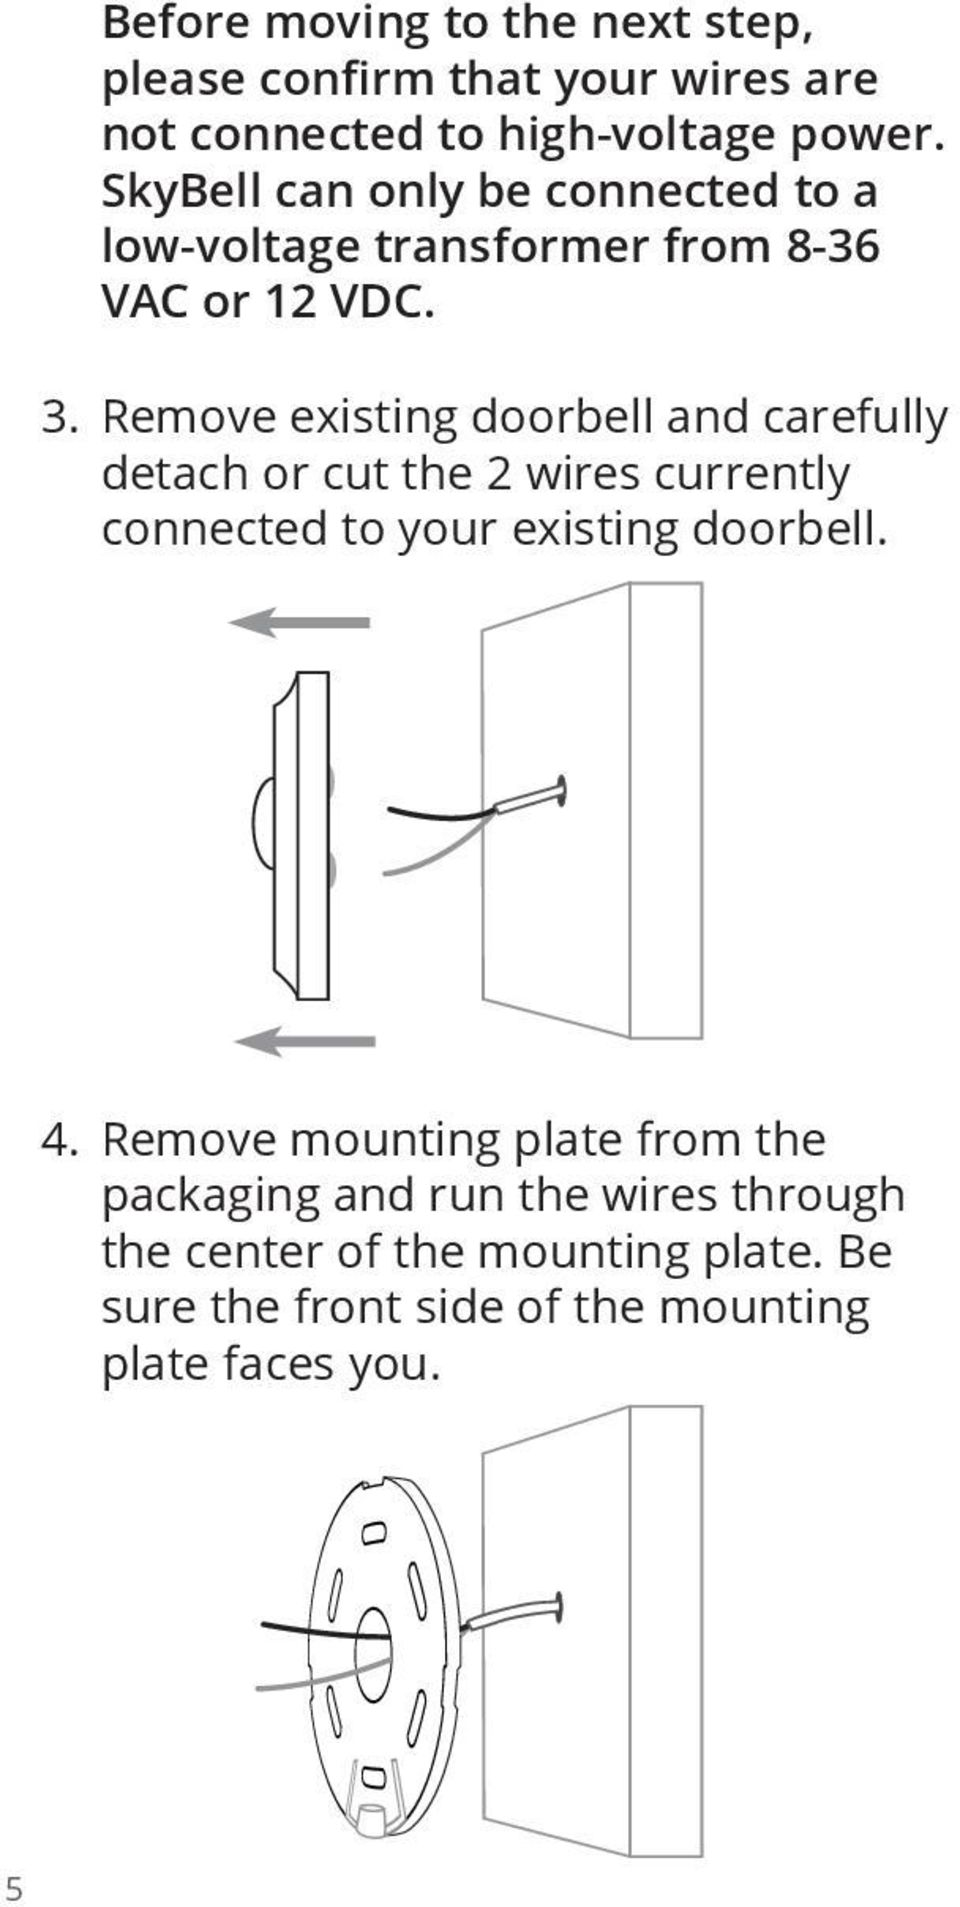 hight resolution of remove existing doorbell and carefully detach or cut the 2 wires currently connected to your existing